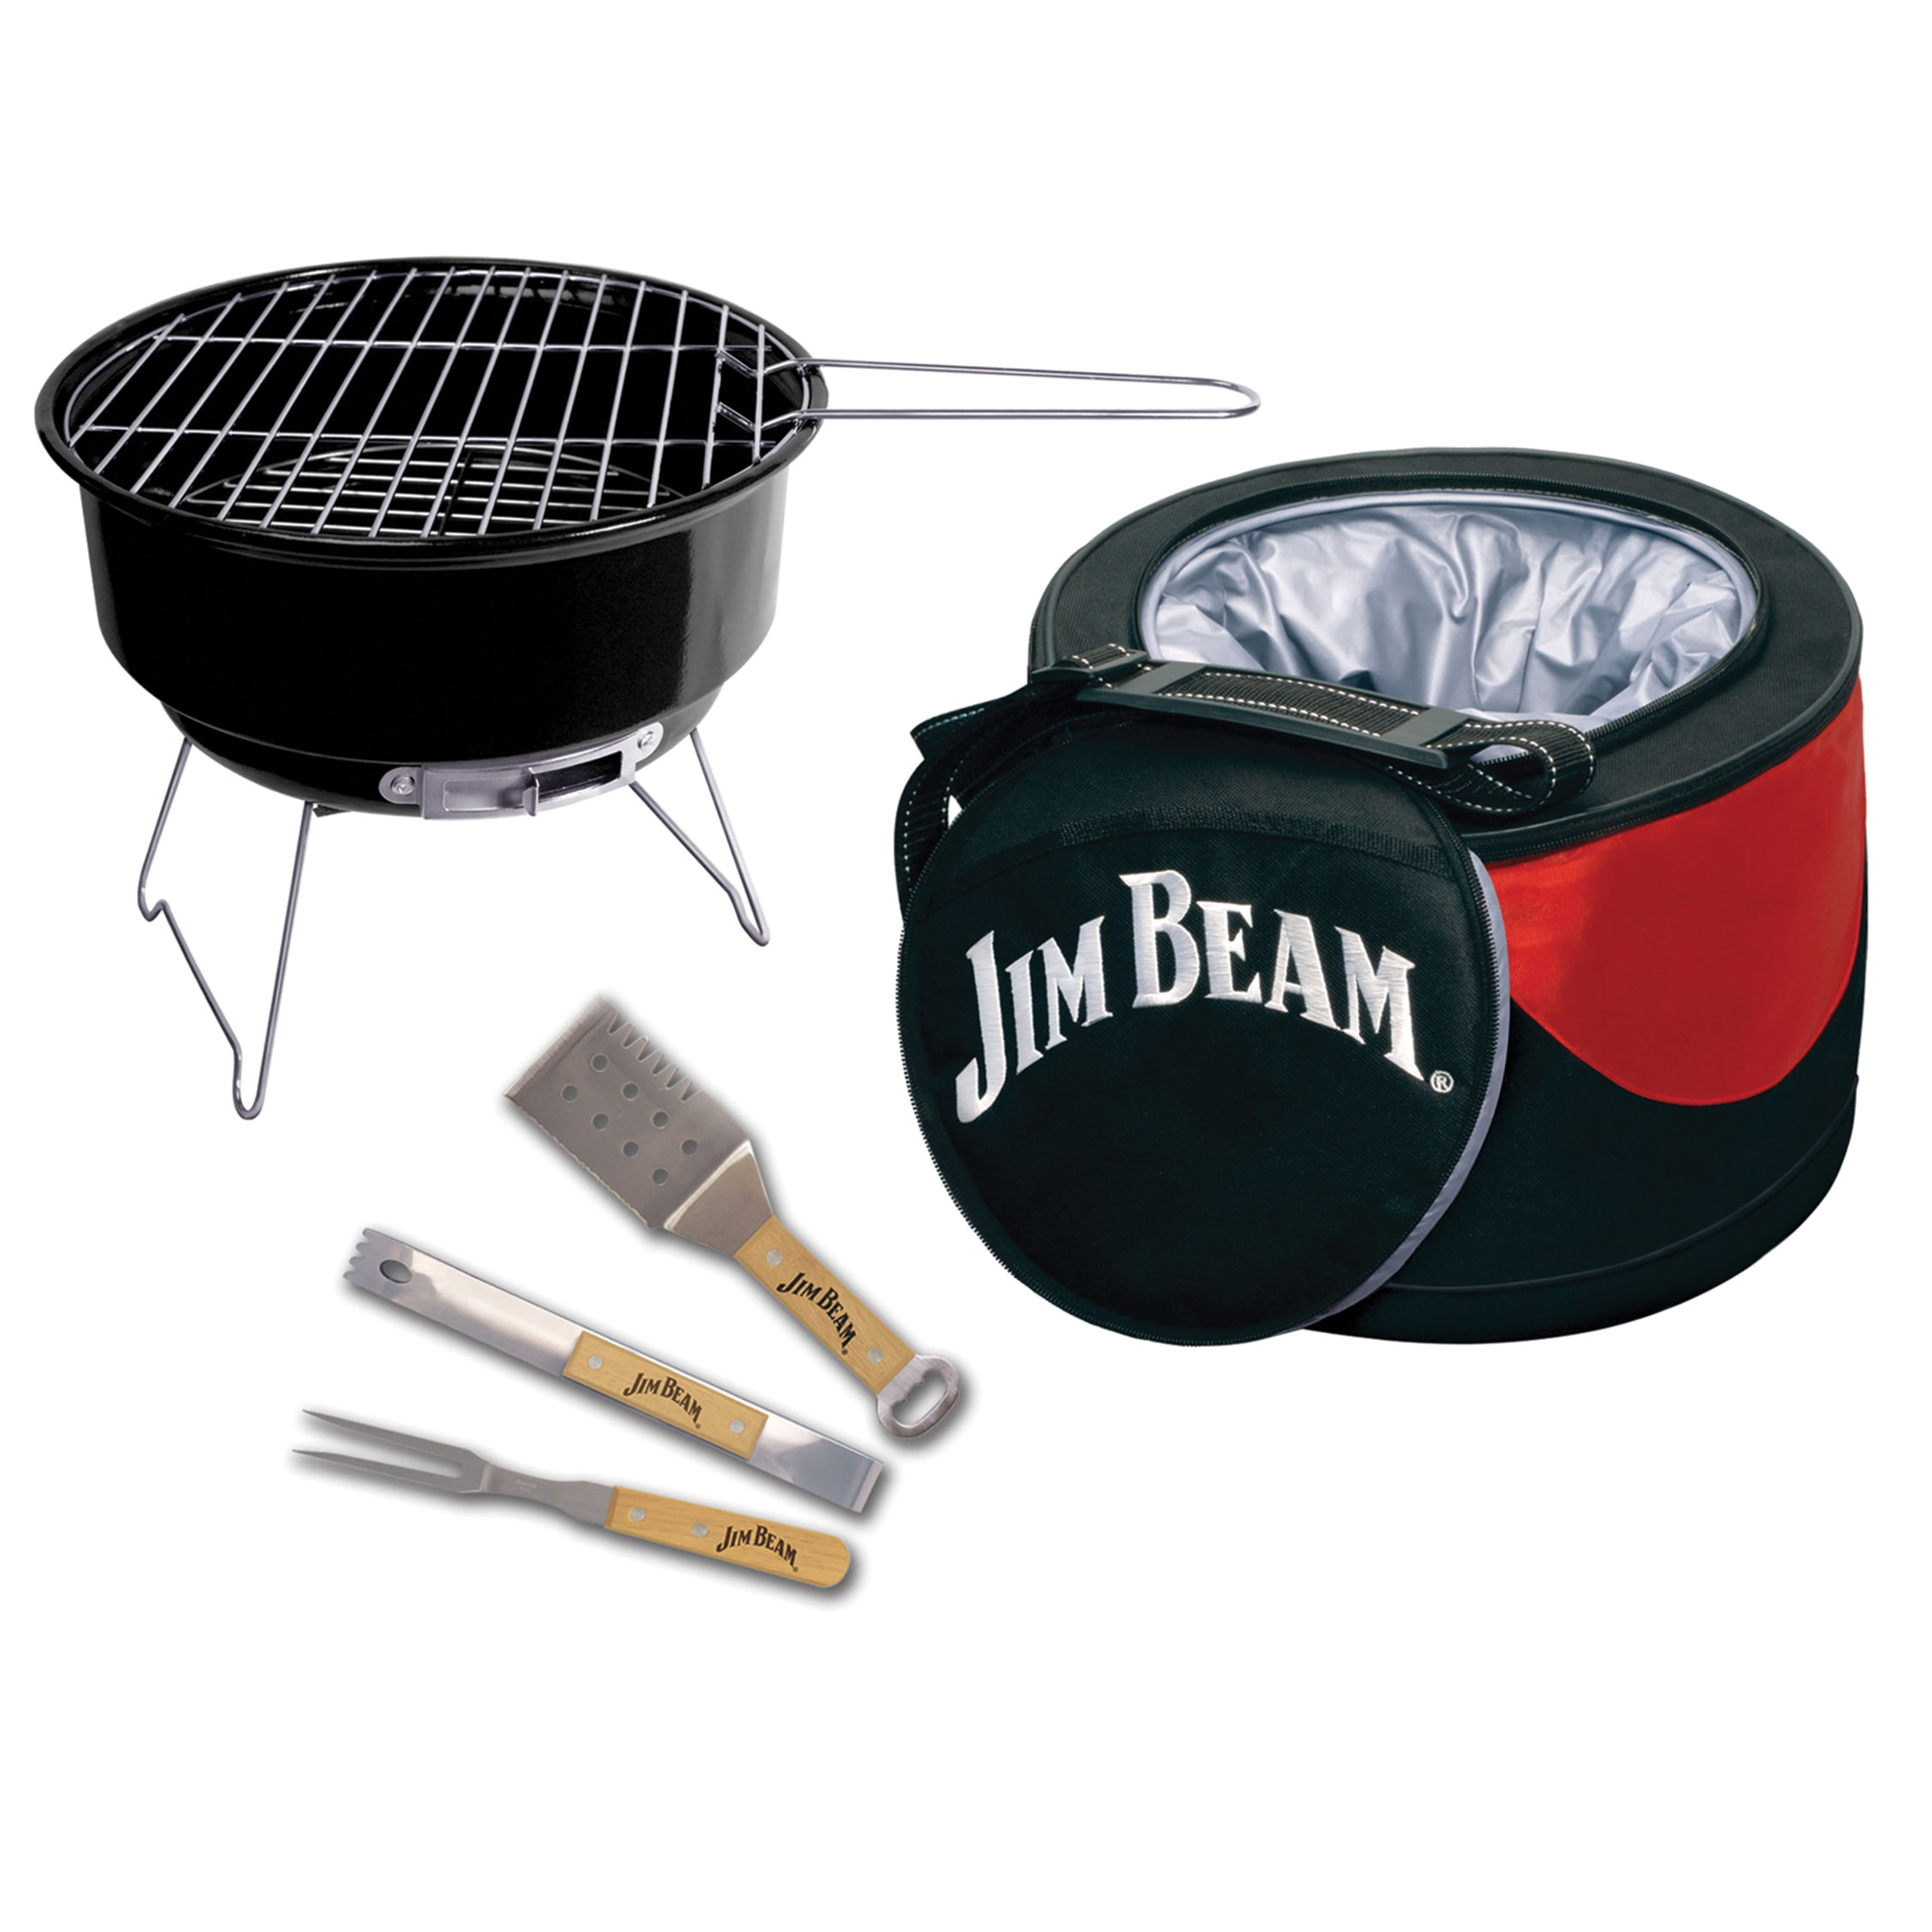 Jim Beam 5 Piece Parawood and Stainless Steel BBQ set with insulated cooler, sporting an exterior storage pocket and adjustable shoulder strap for easy portability